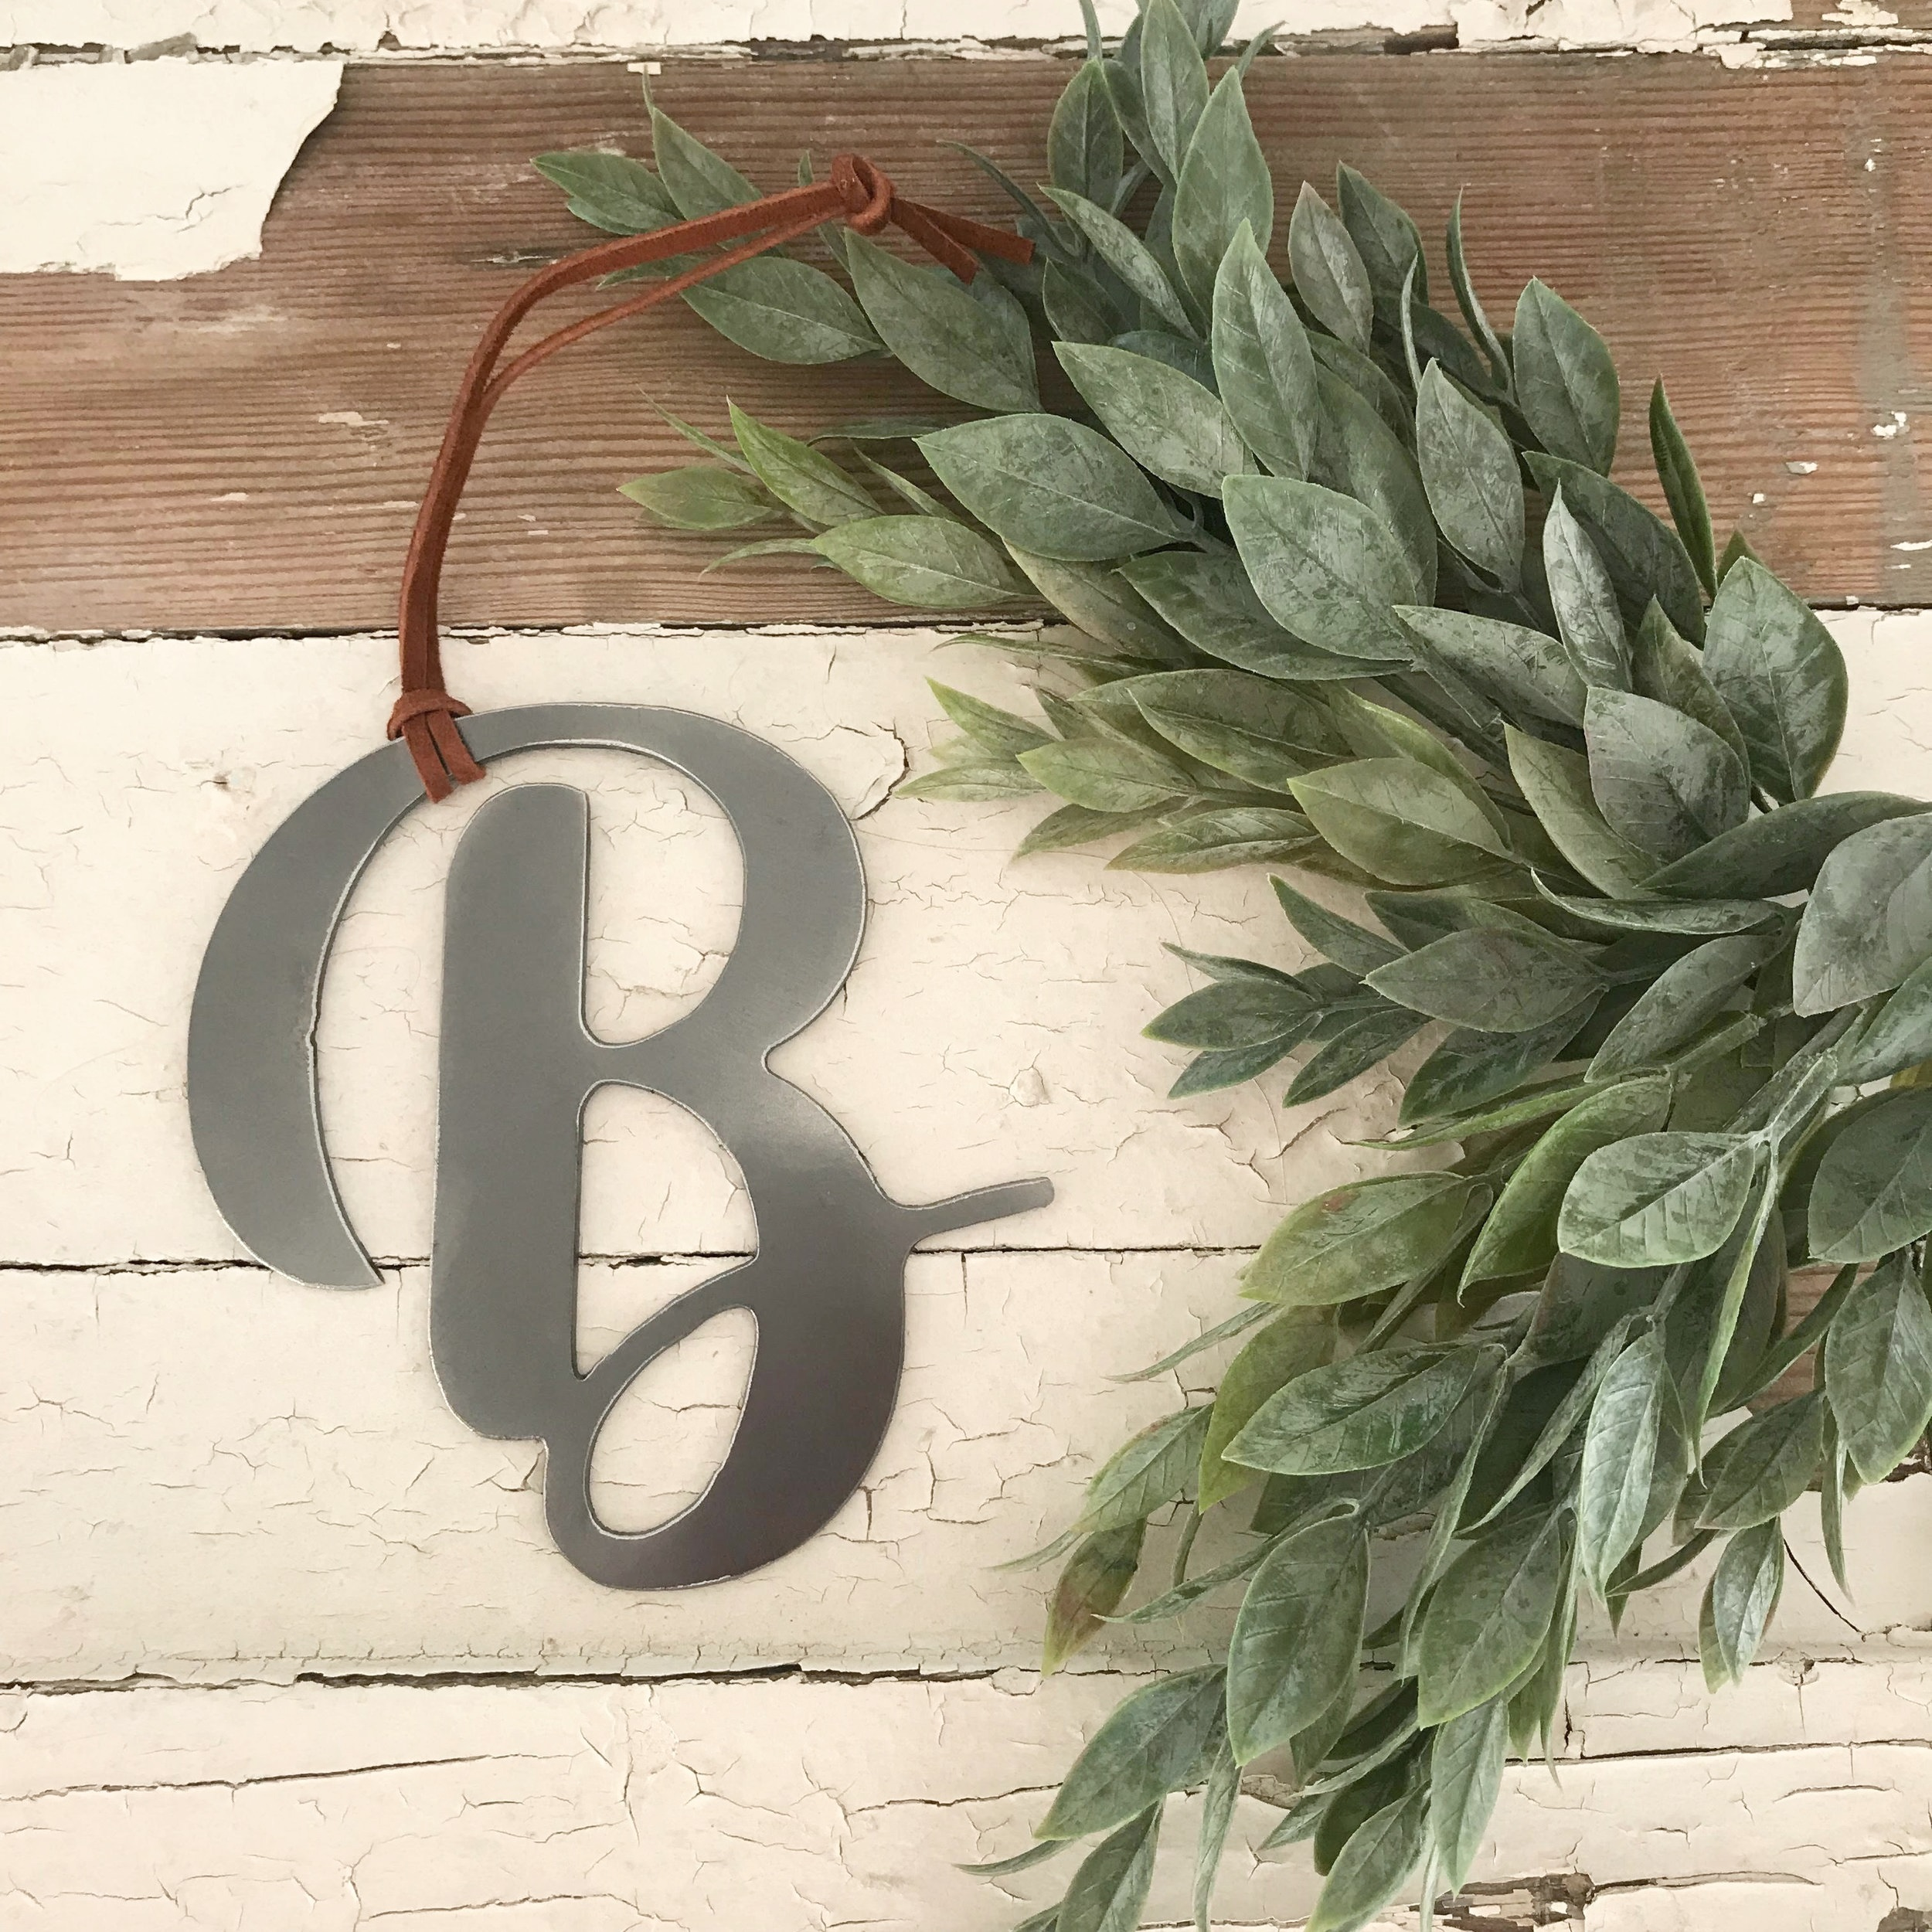 New,  simplified monogram ornaments . Use one initial for each stocking tag, or simply get your family monogram for your tree.